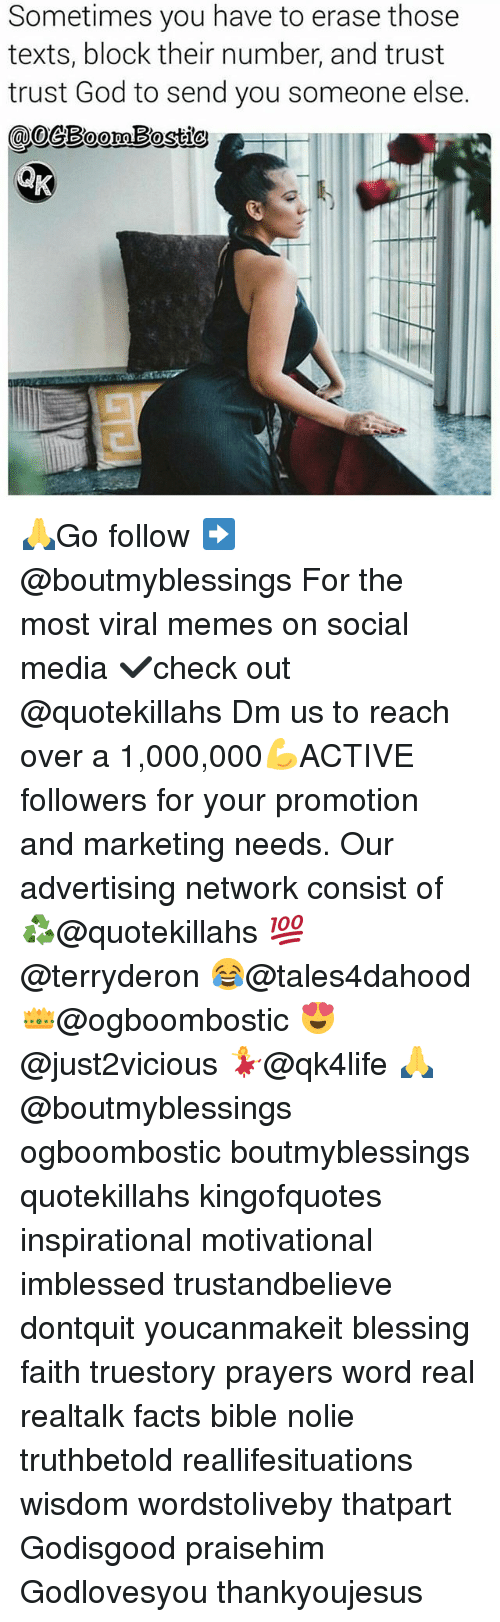 Facts, God, and Memes: Sometimes you have to erase those  texts, block their number, and trust  trust God to send you someone else.  @oeBoomBostio 🙏Go follow ➡@boutmyblessings For the most viral memes on social media ✔check out @quotekillahs Dm us to reach over a 1,000,000💪ACTIVE followers for your promotion and marketing needs. Our advertising network consist of ♻@quotekillahs 💯@terryderon 😂@tales4dahood 👑@ogboombostic 😍@just2vicious 💃@qk4life 🙏@boutmyblessings ogboombostic boutmyblessings quotekillahs kingofquotes inspirational motivational imblessed trustandbelieve dontquit youcanmakeit blessing faith truestory prayers word real realtalk facts bible nolie truthbetold reallifesituations wisdom wordstoliveby thatpart Godisgood praisehim Godlovesyou thankyoujesus